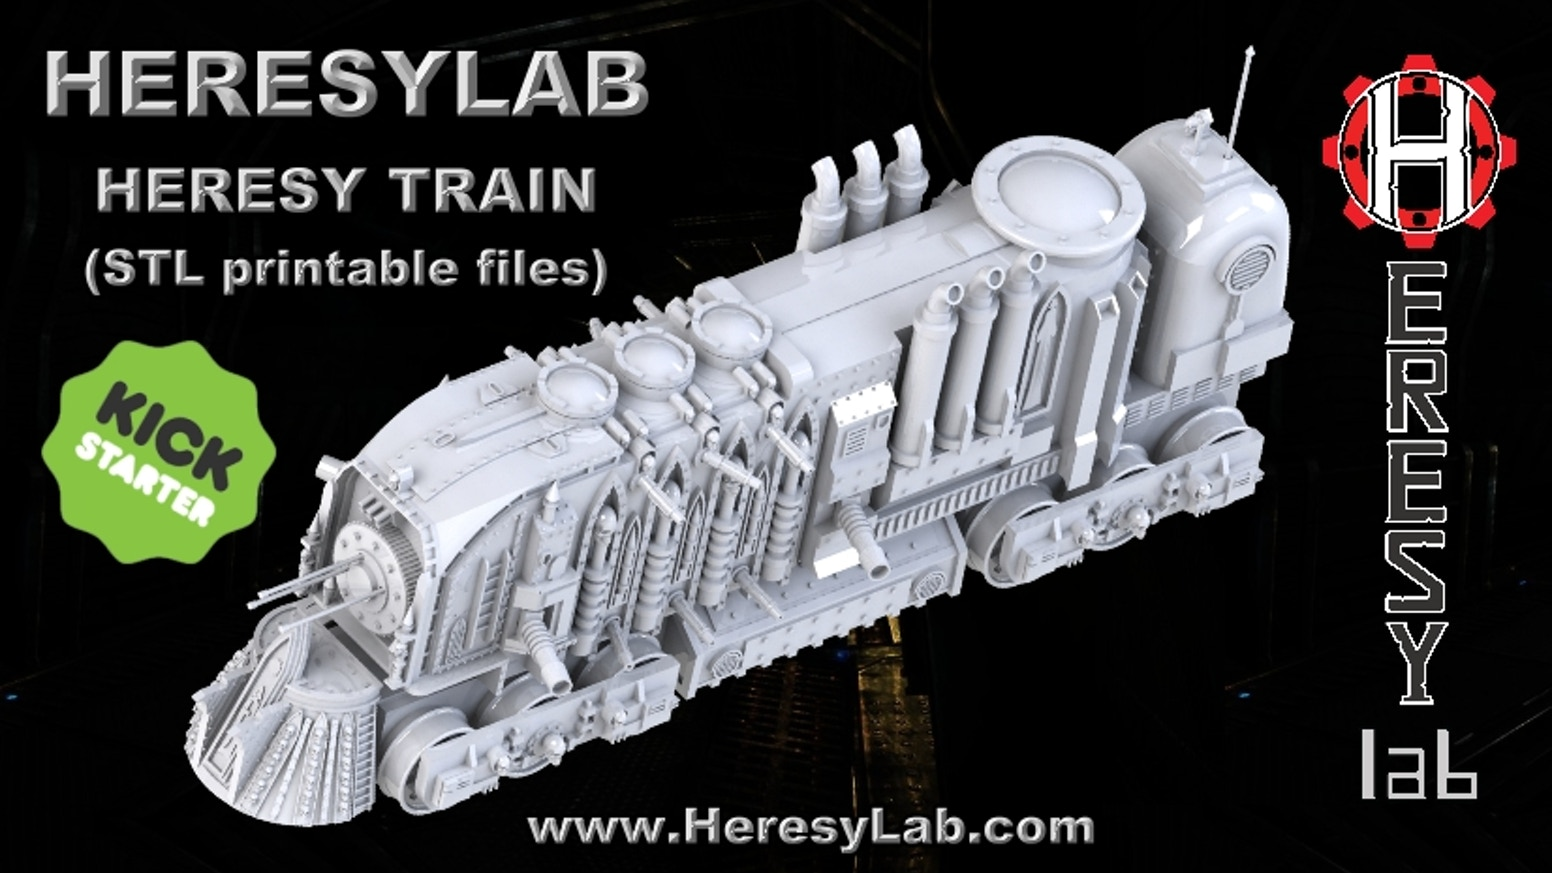 I am no longer following messages on this Kickstarter, if you have any issue please email me at: INFO@HERESYLAB.COM